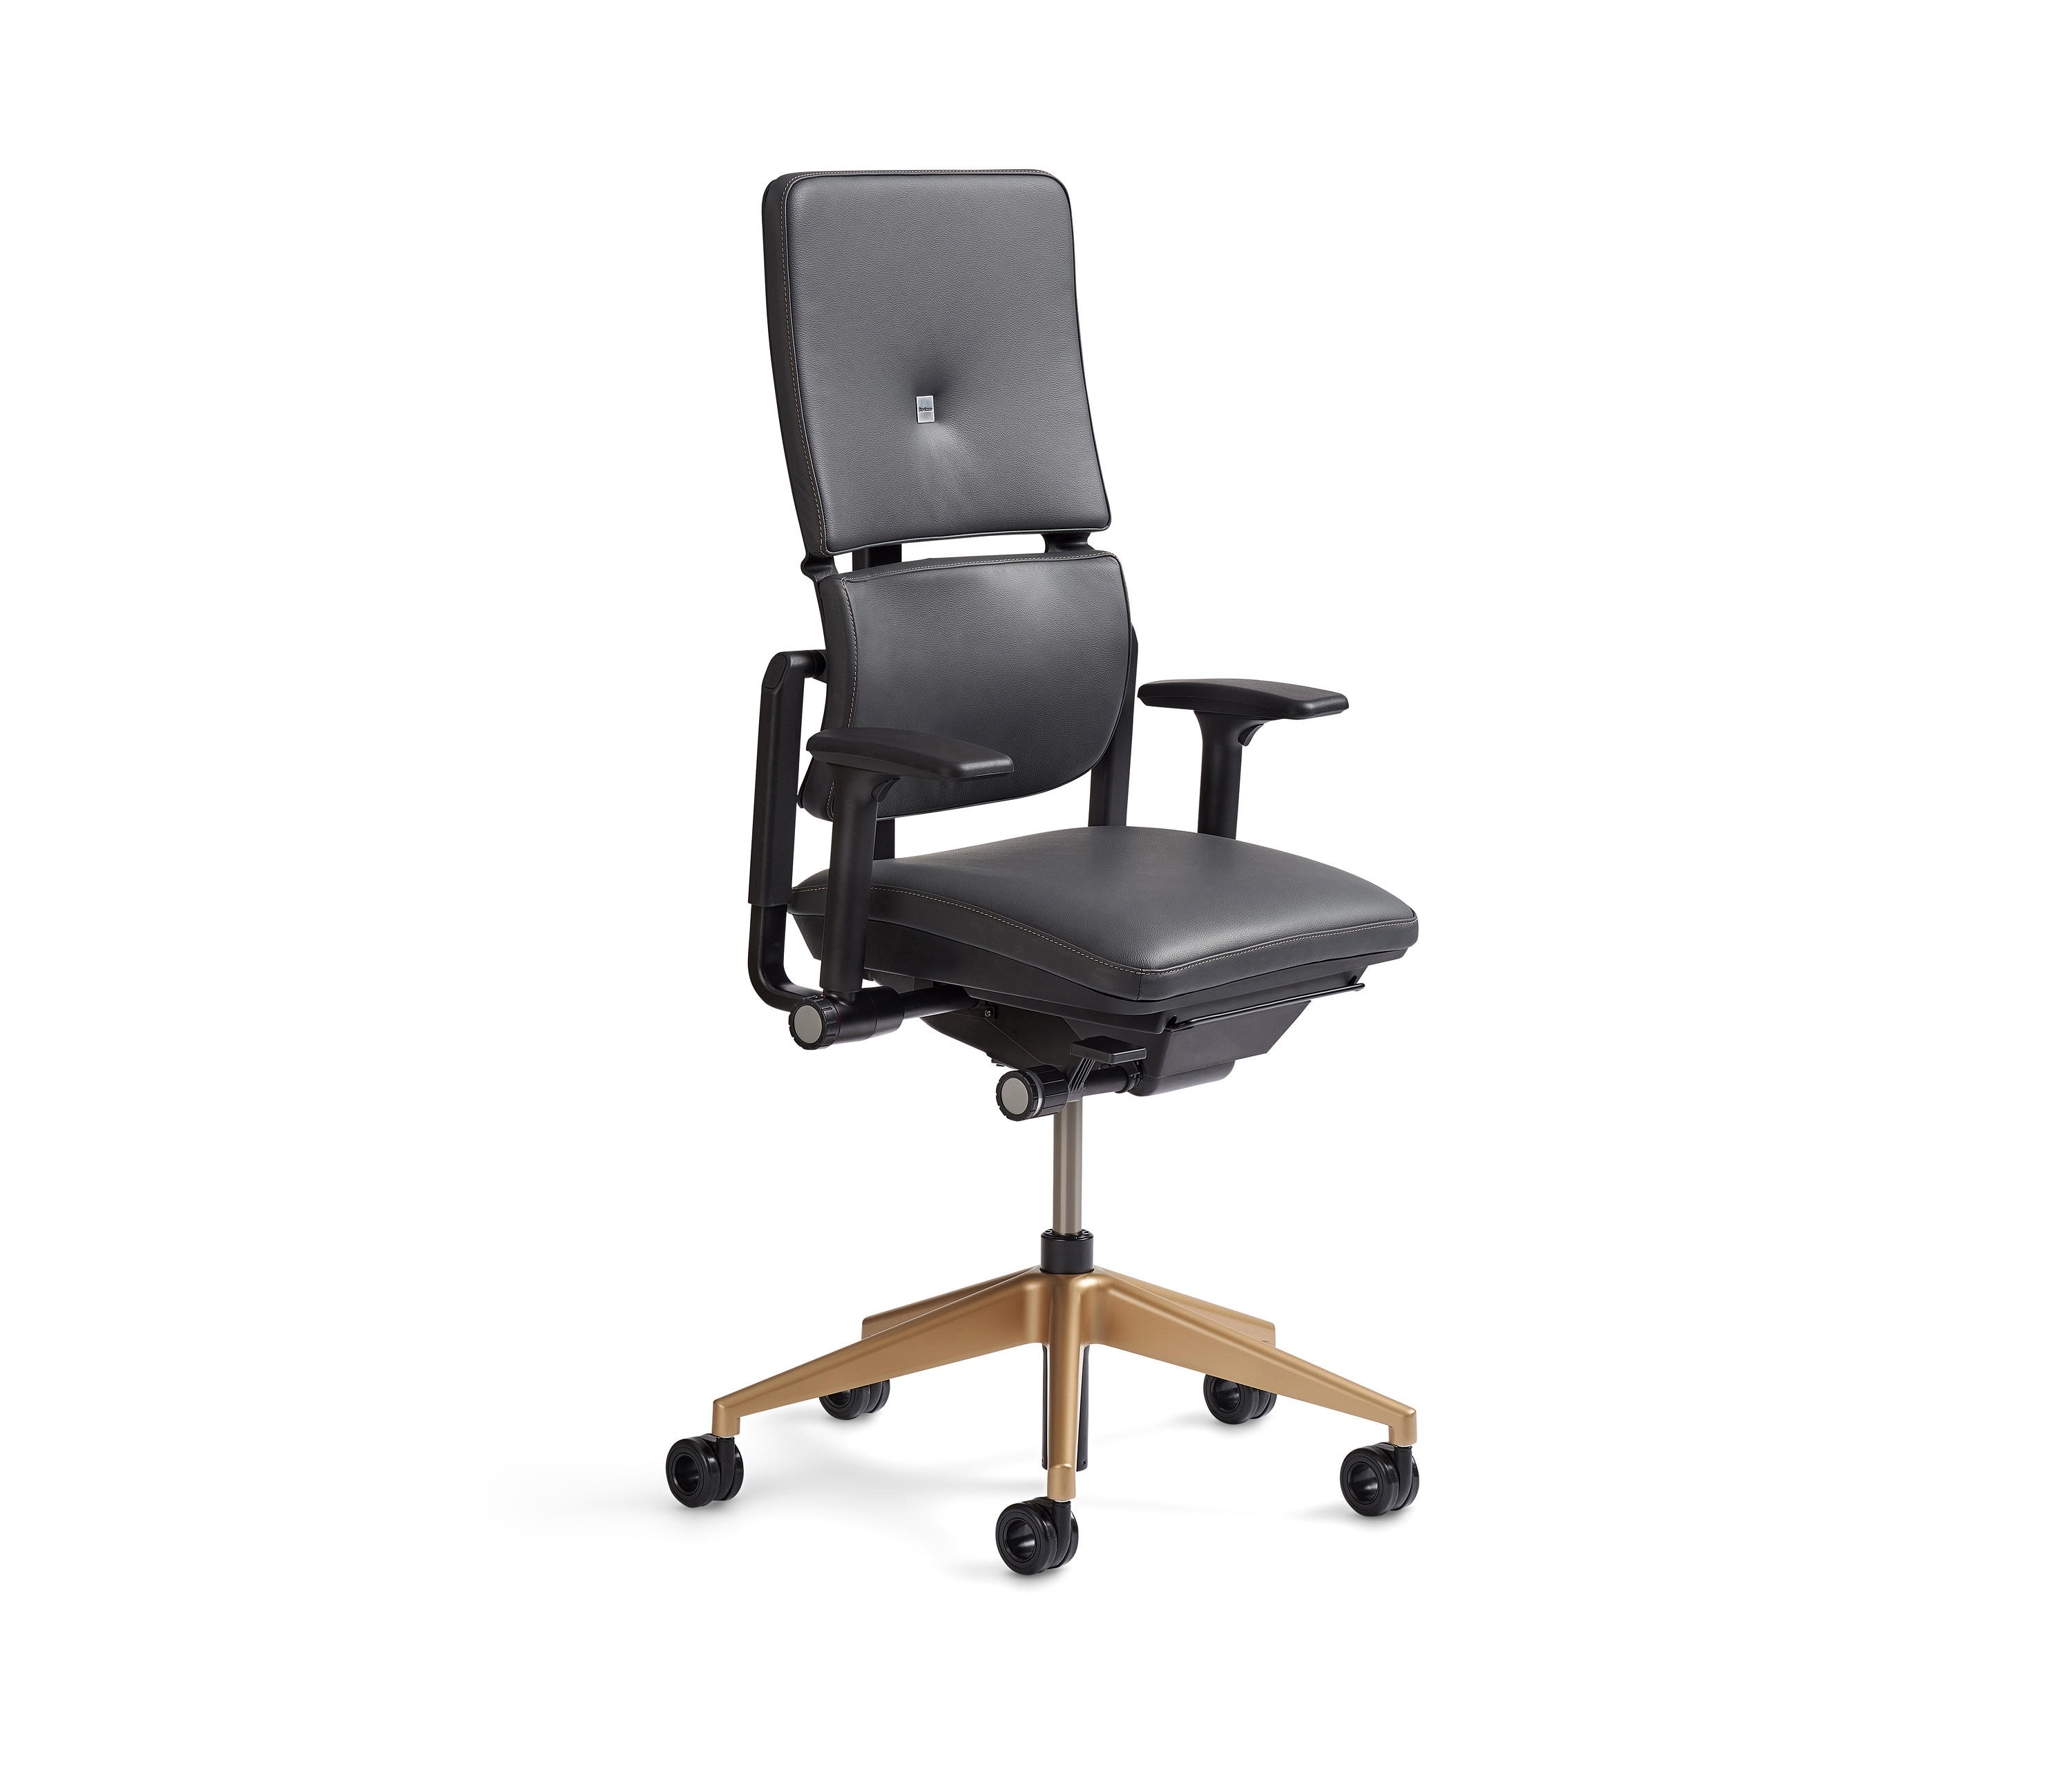 PLEASE CHAIR - Office chairs from Steelcase  Architonic